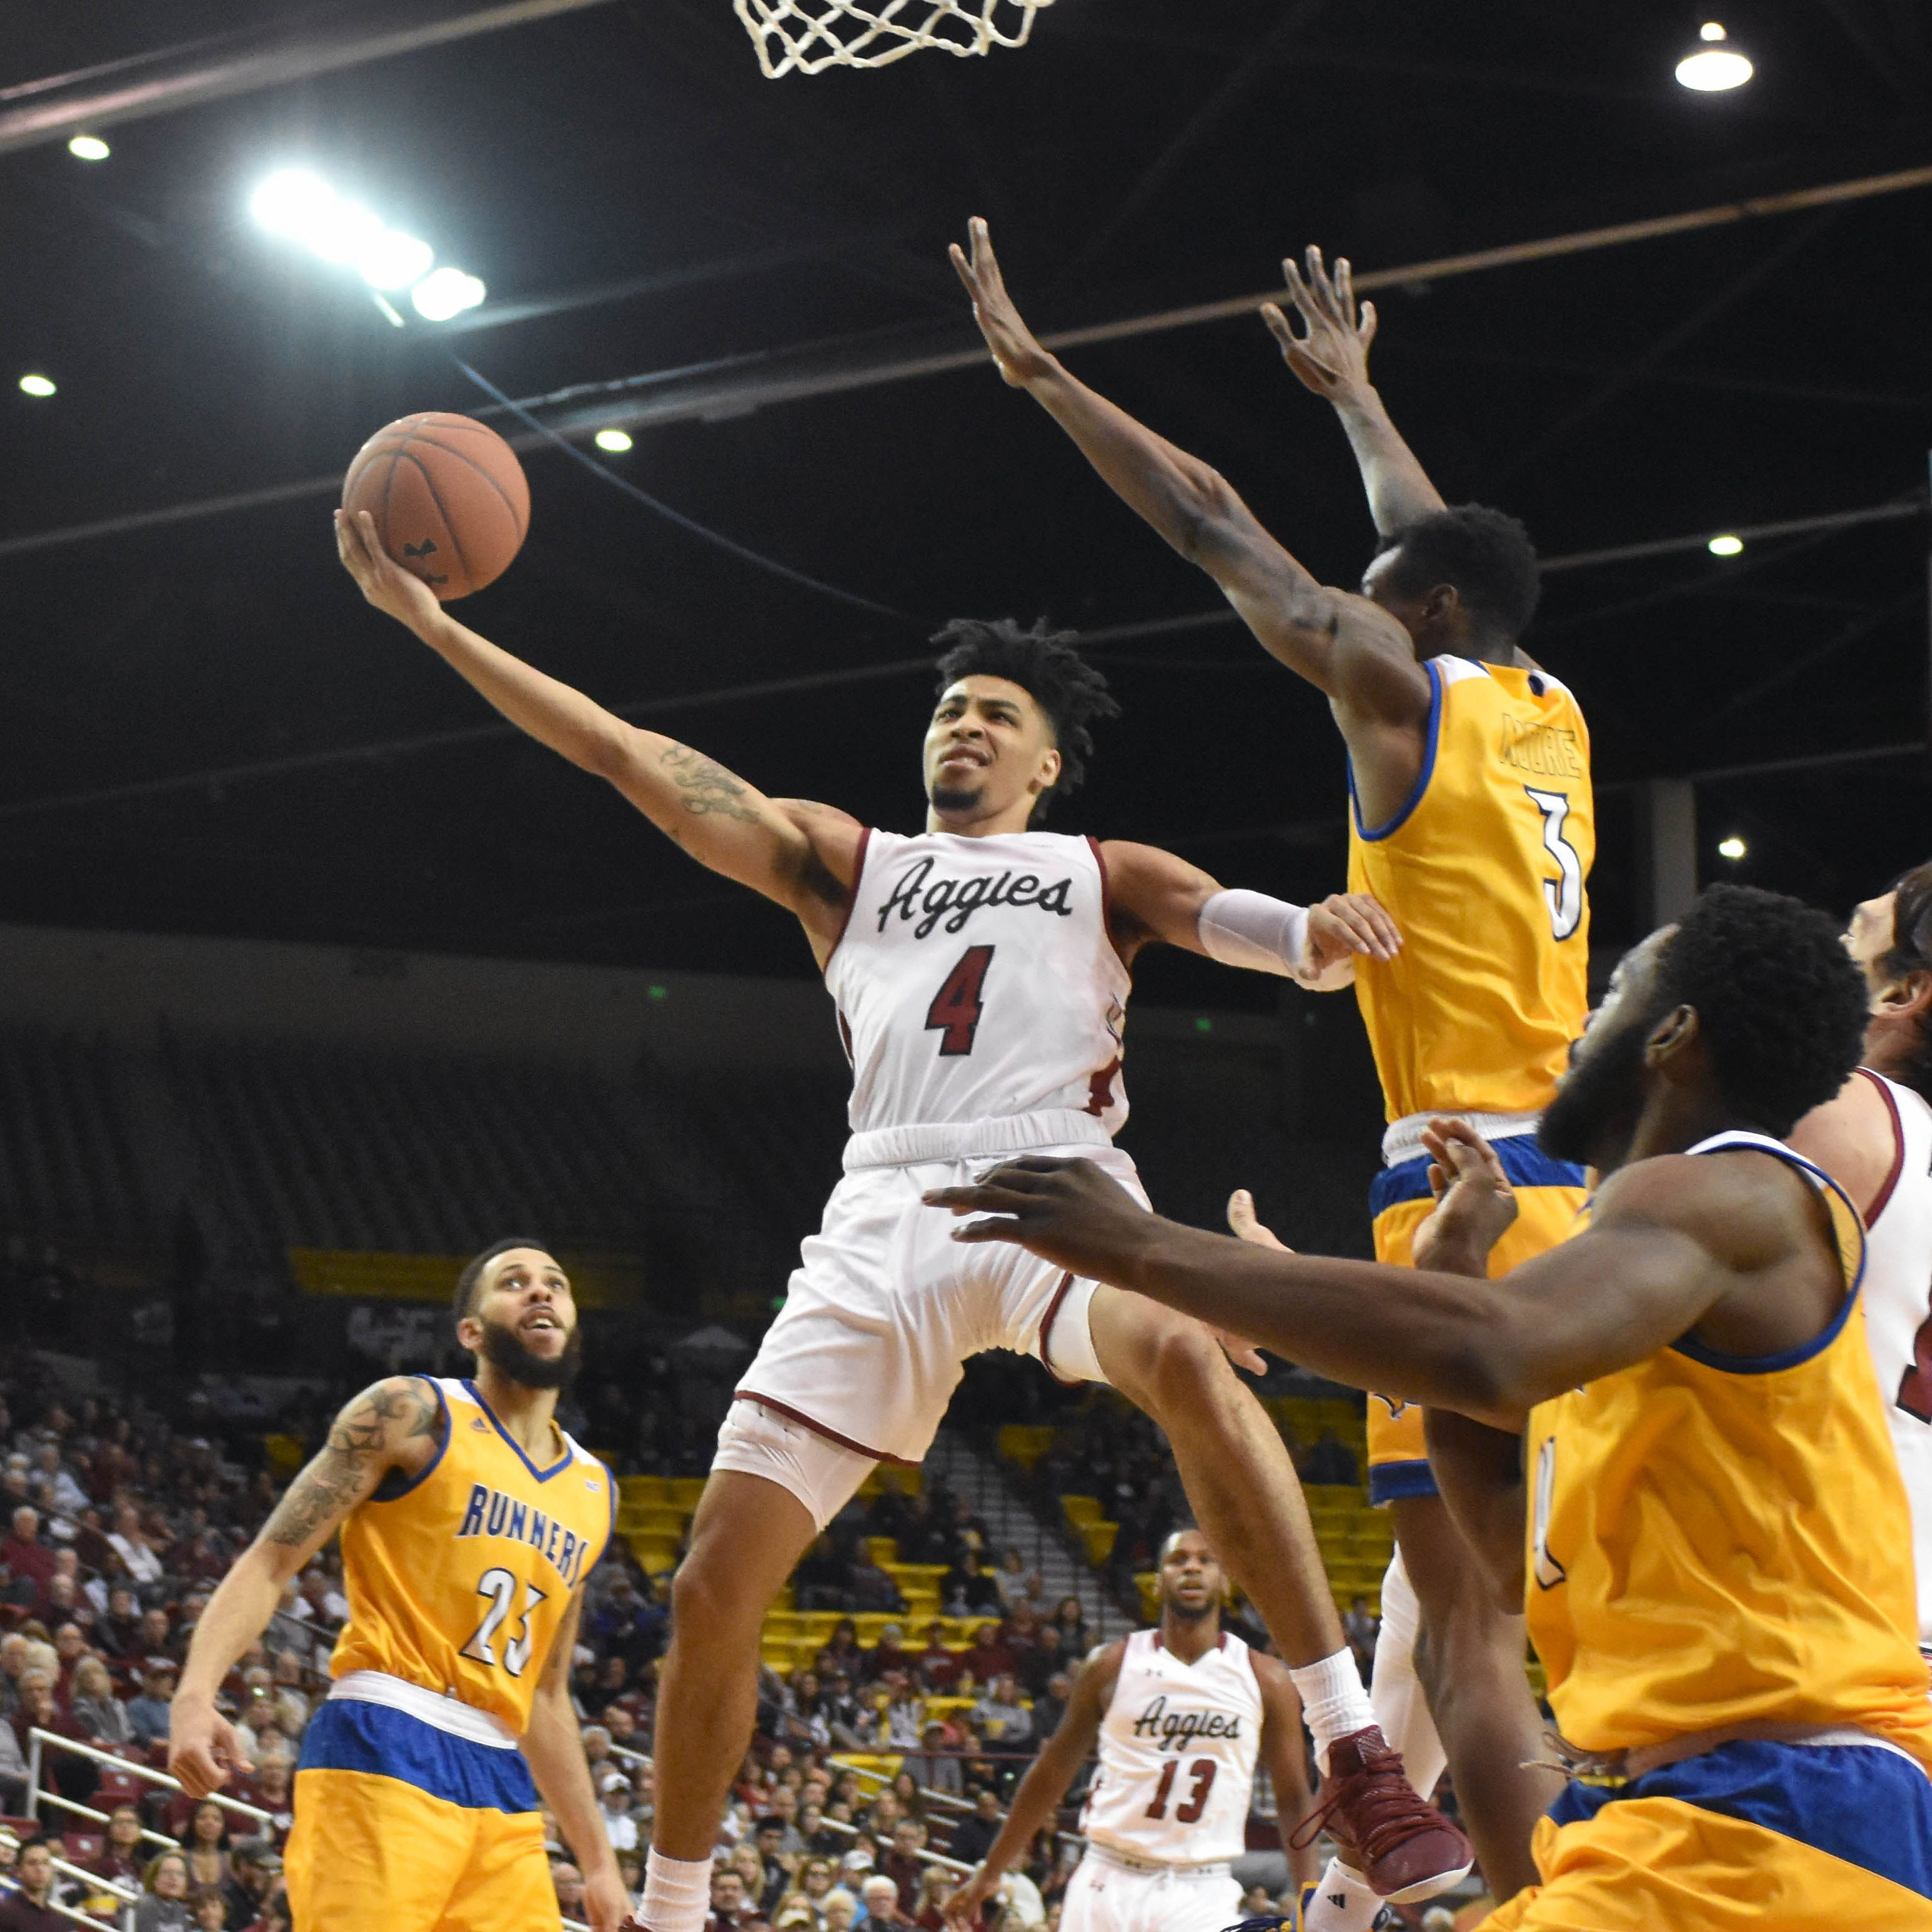 New Mexico State looks to continue momentum on WAC road trip